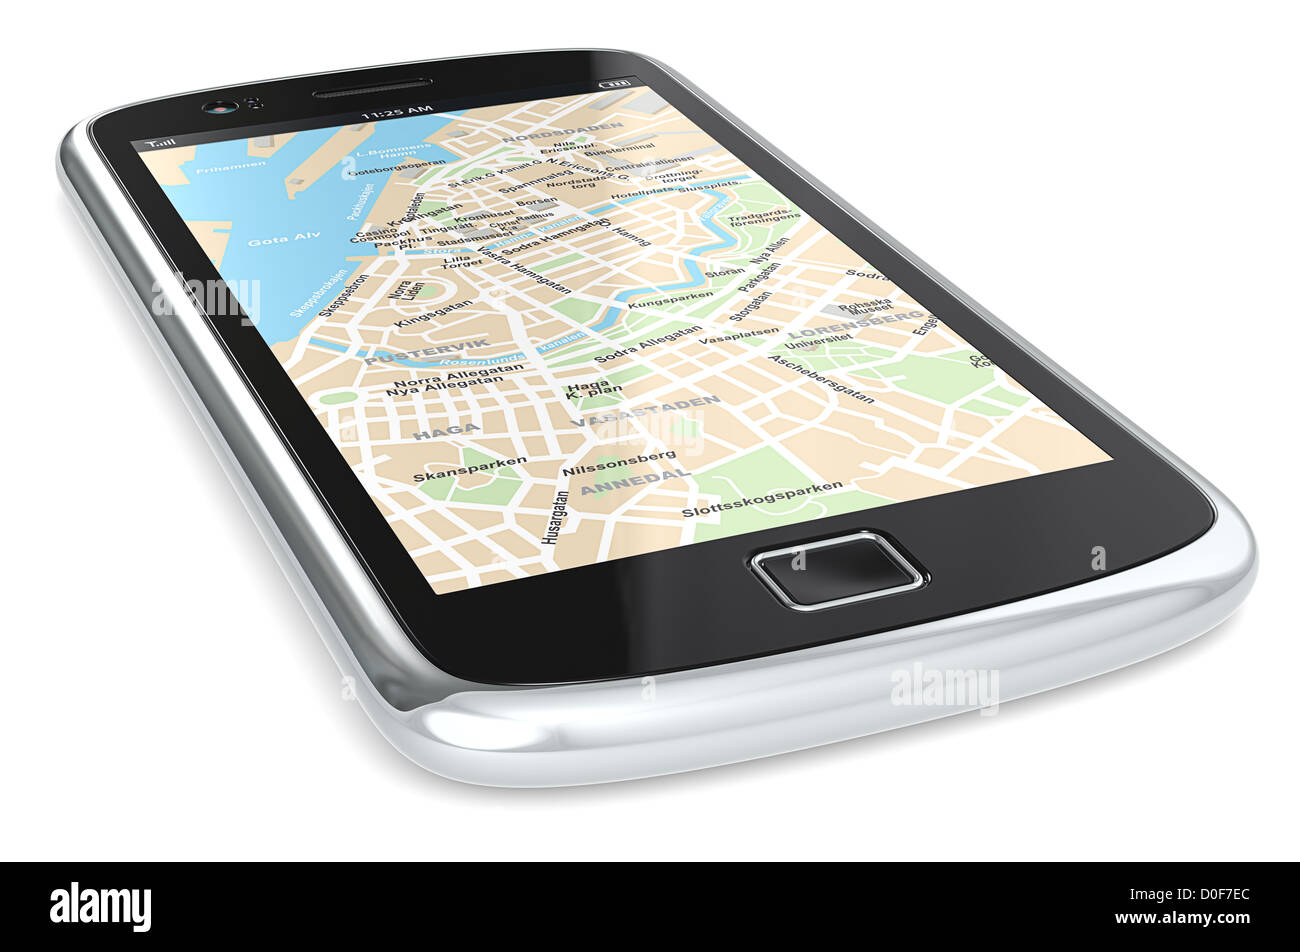 Black Smartphone with a GPS map. City Centre. - Stock Image